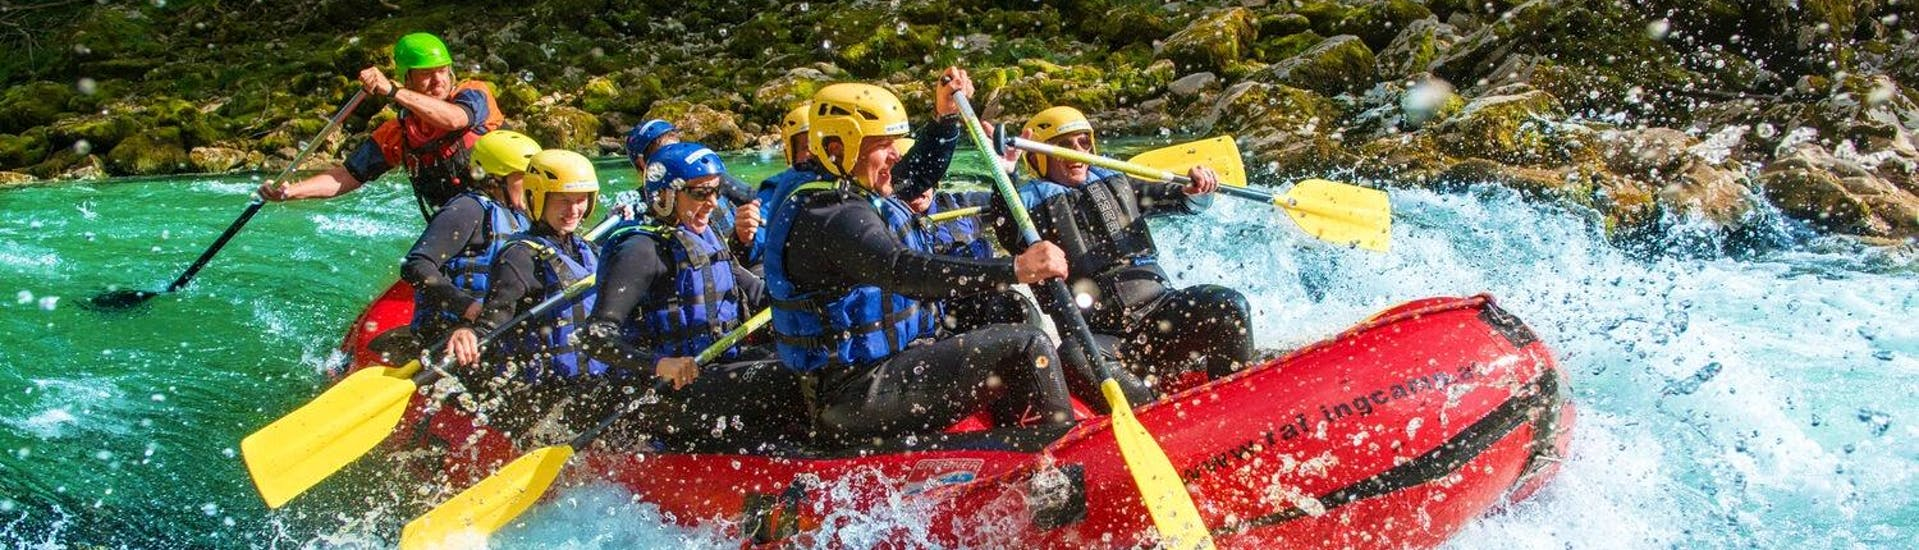 Rafting on the Salza in Palfau - Extended Tour avec Deep Roots Adventures Palfau - Hero image